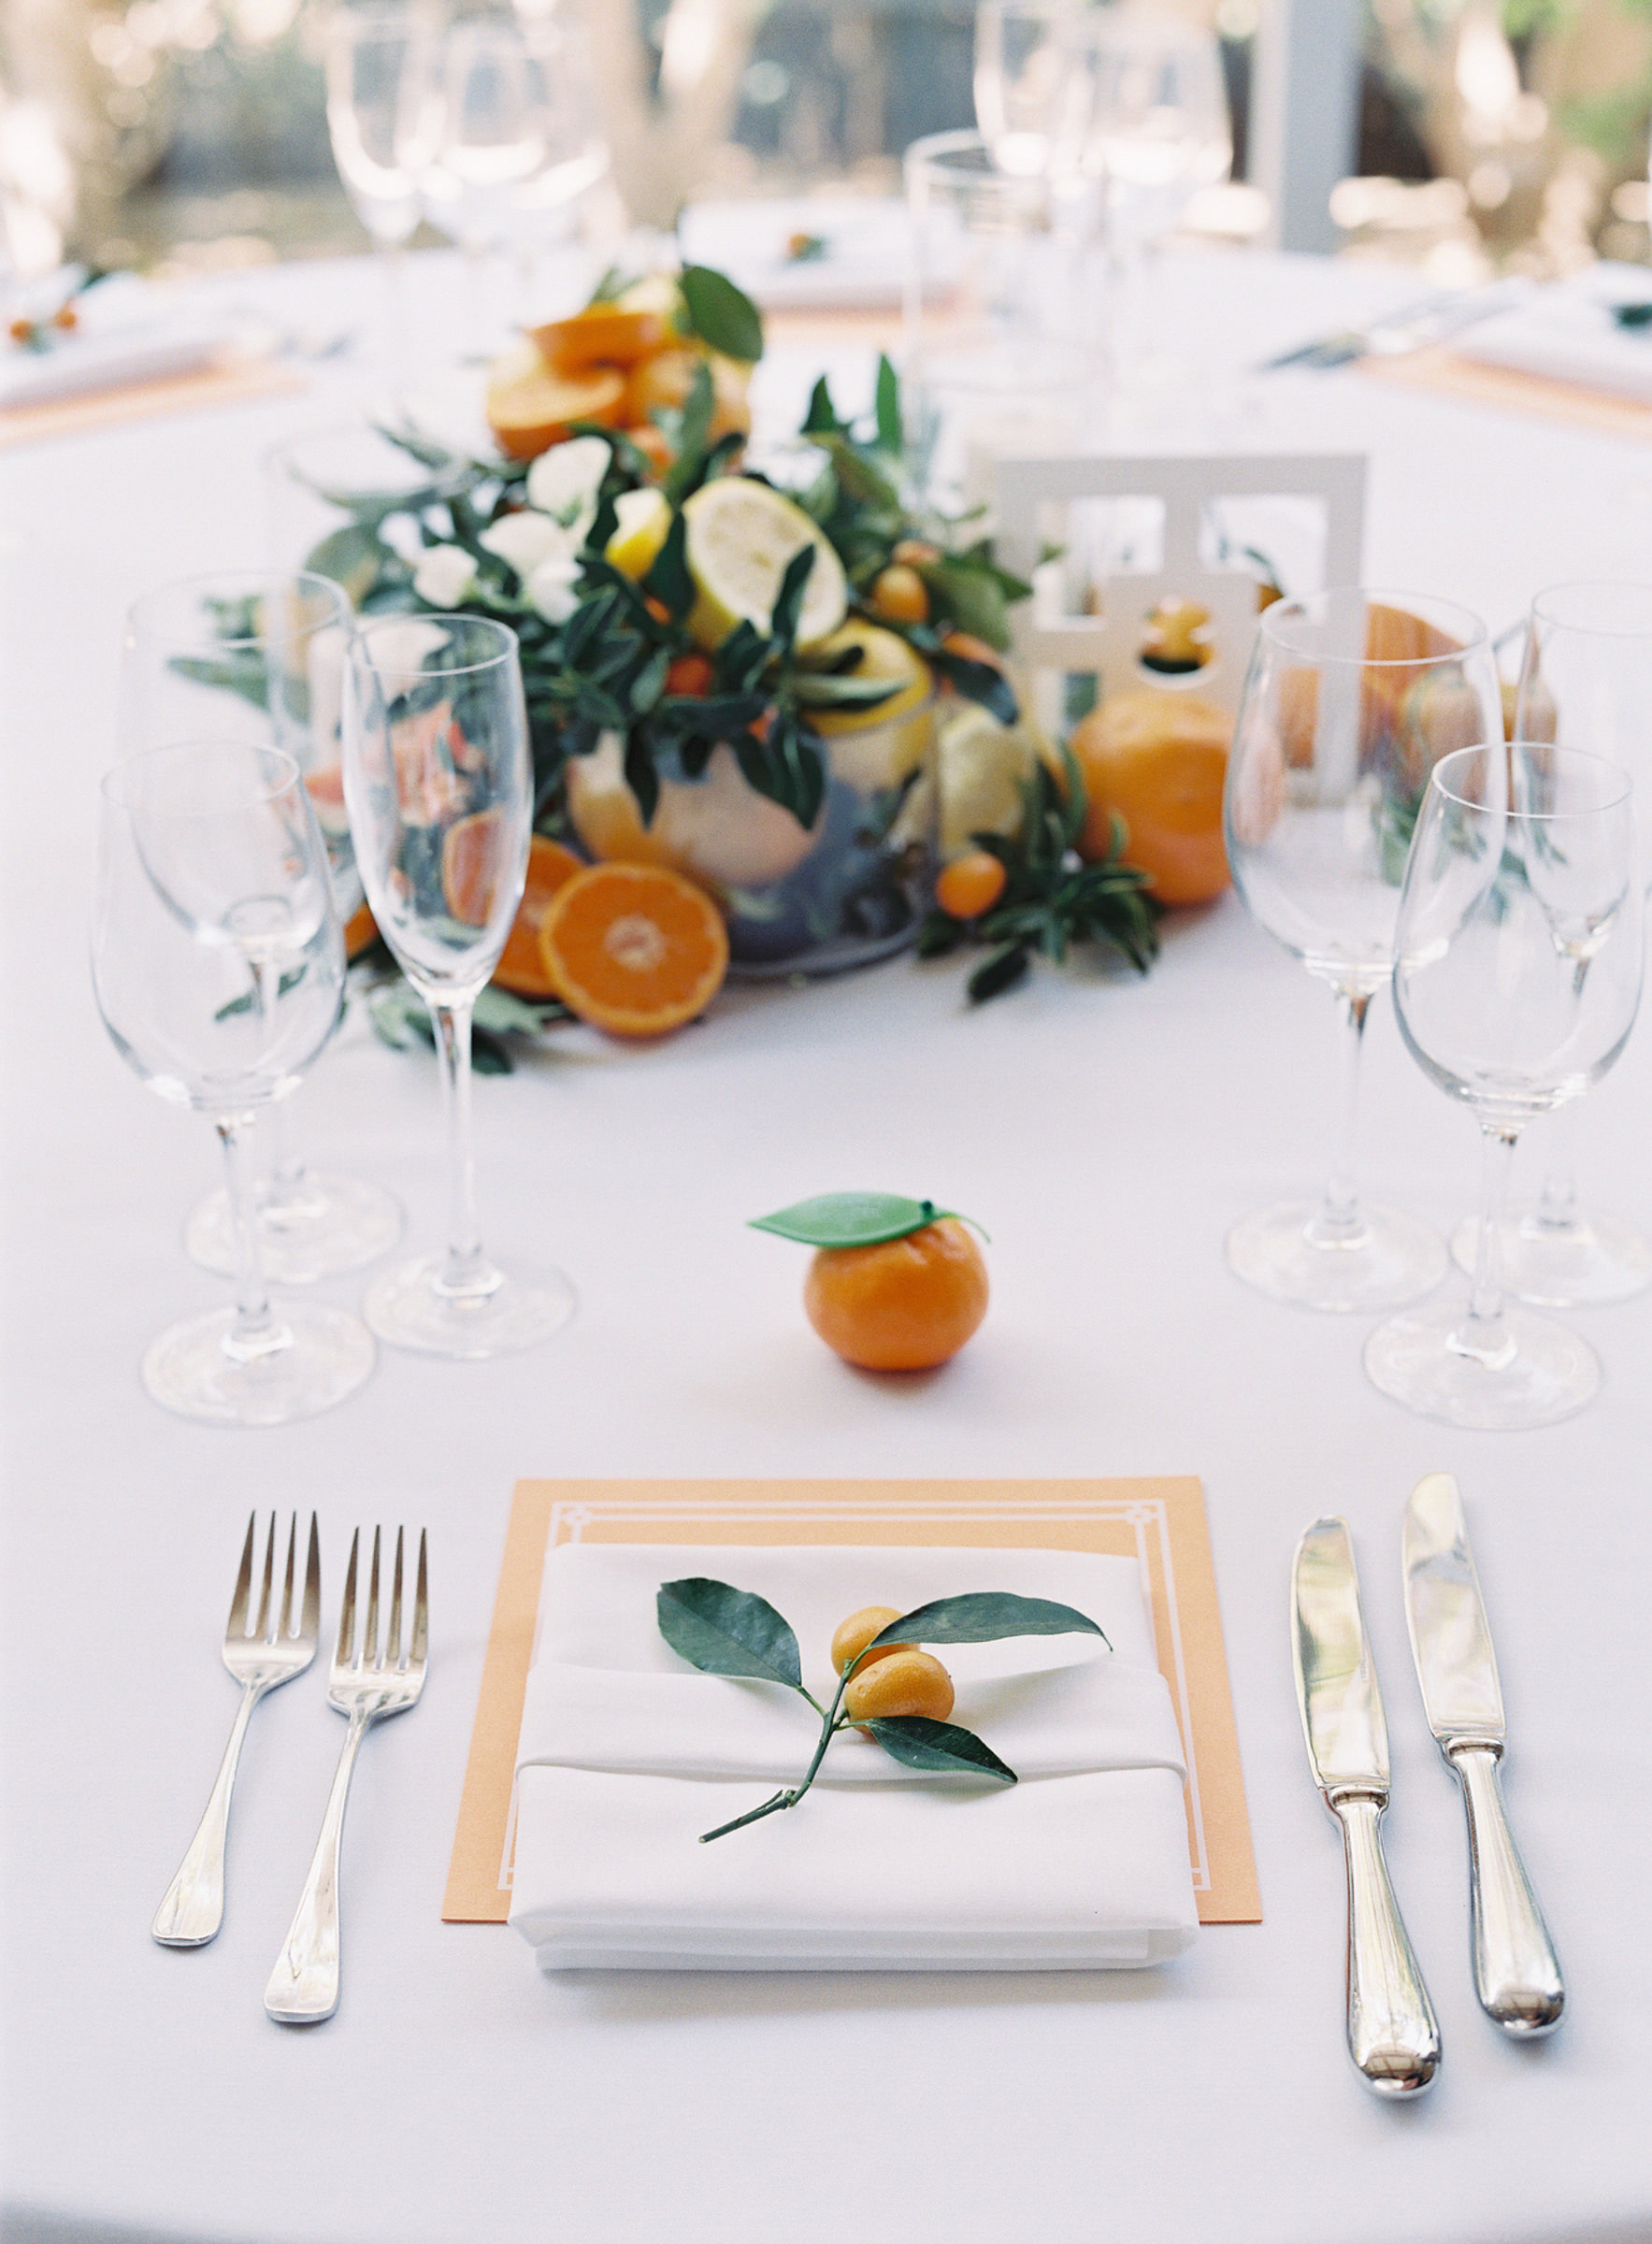 Citrus and kumquat place settings and centerpieces - photo by Corbin Gurkin